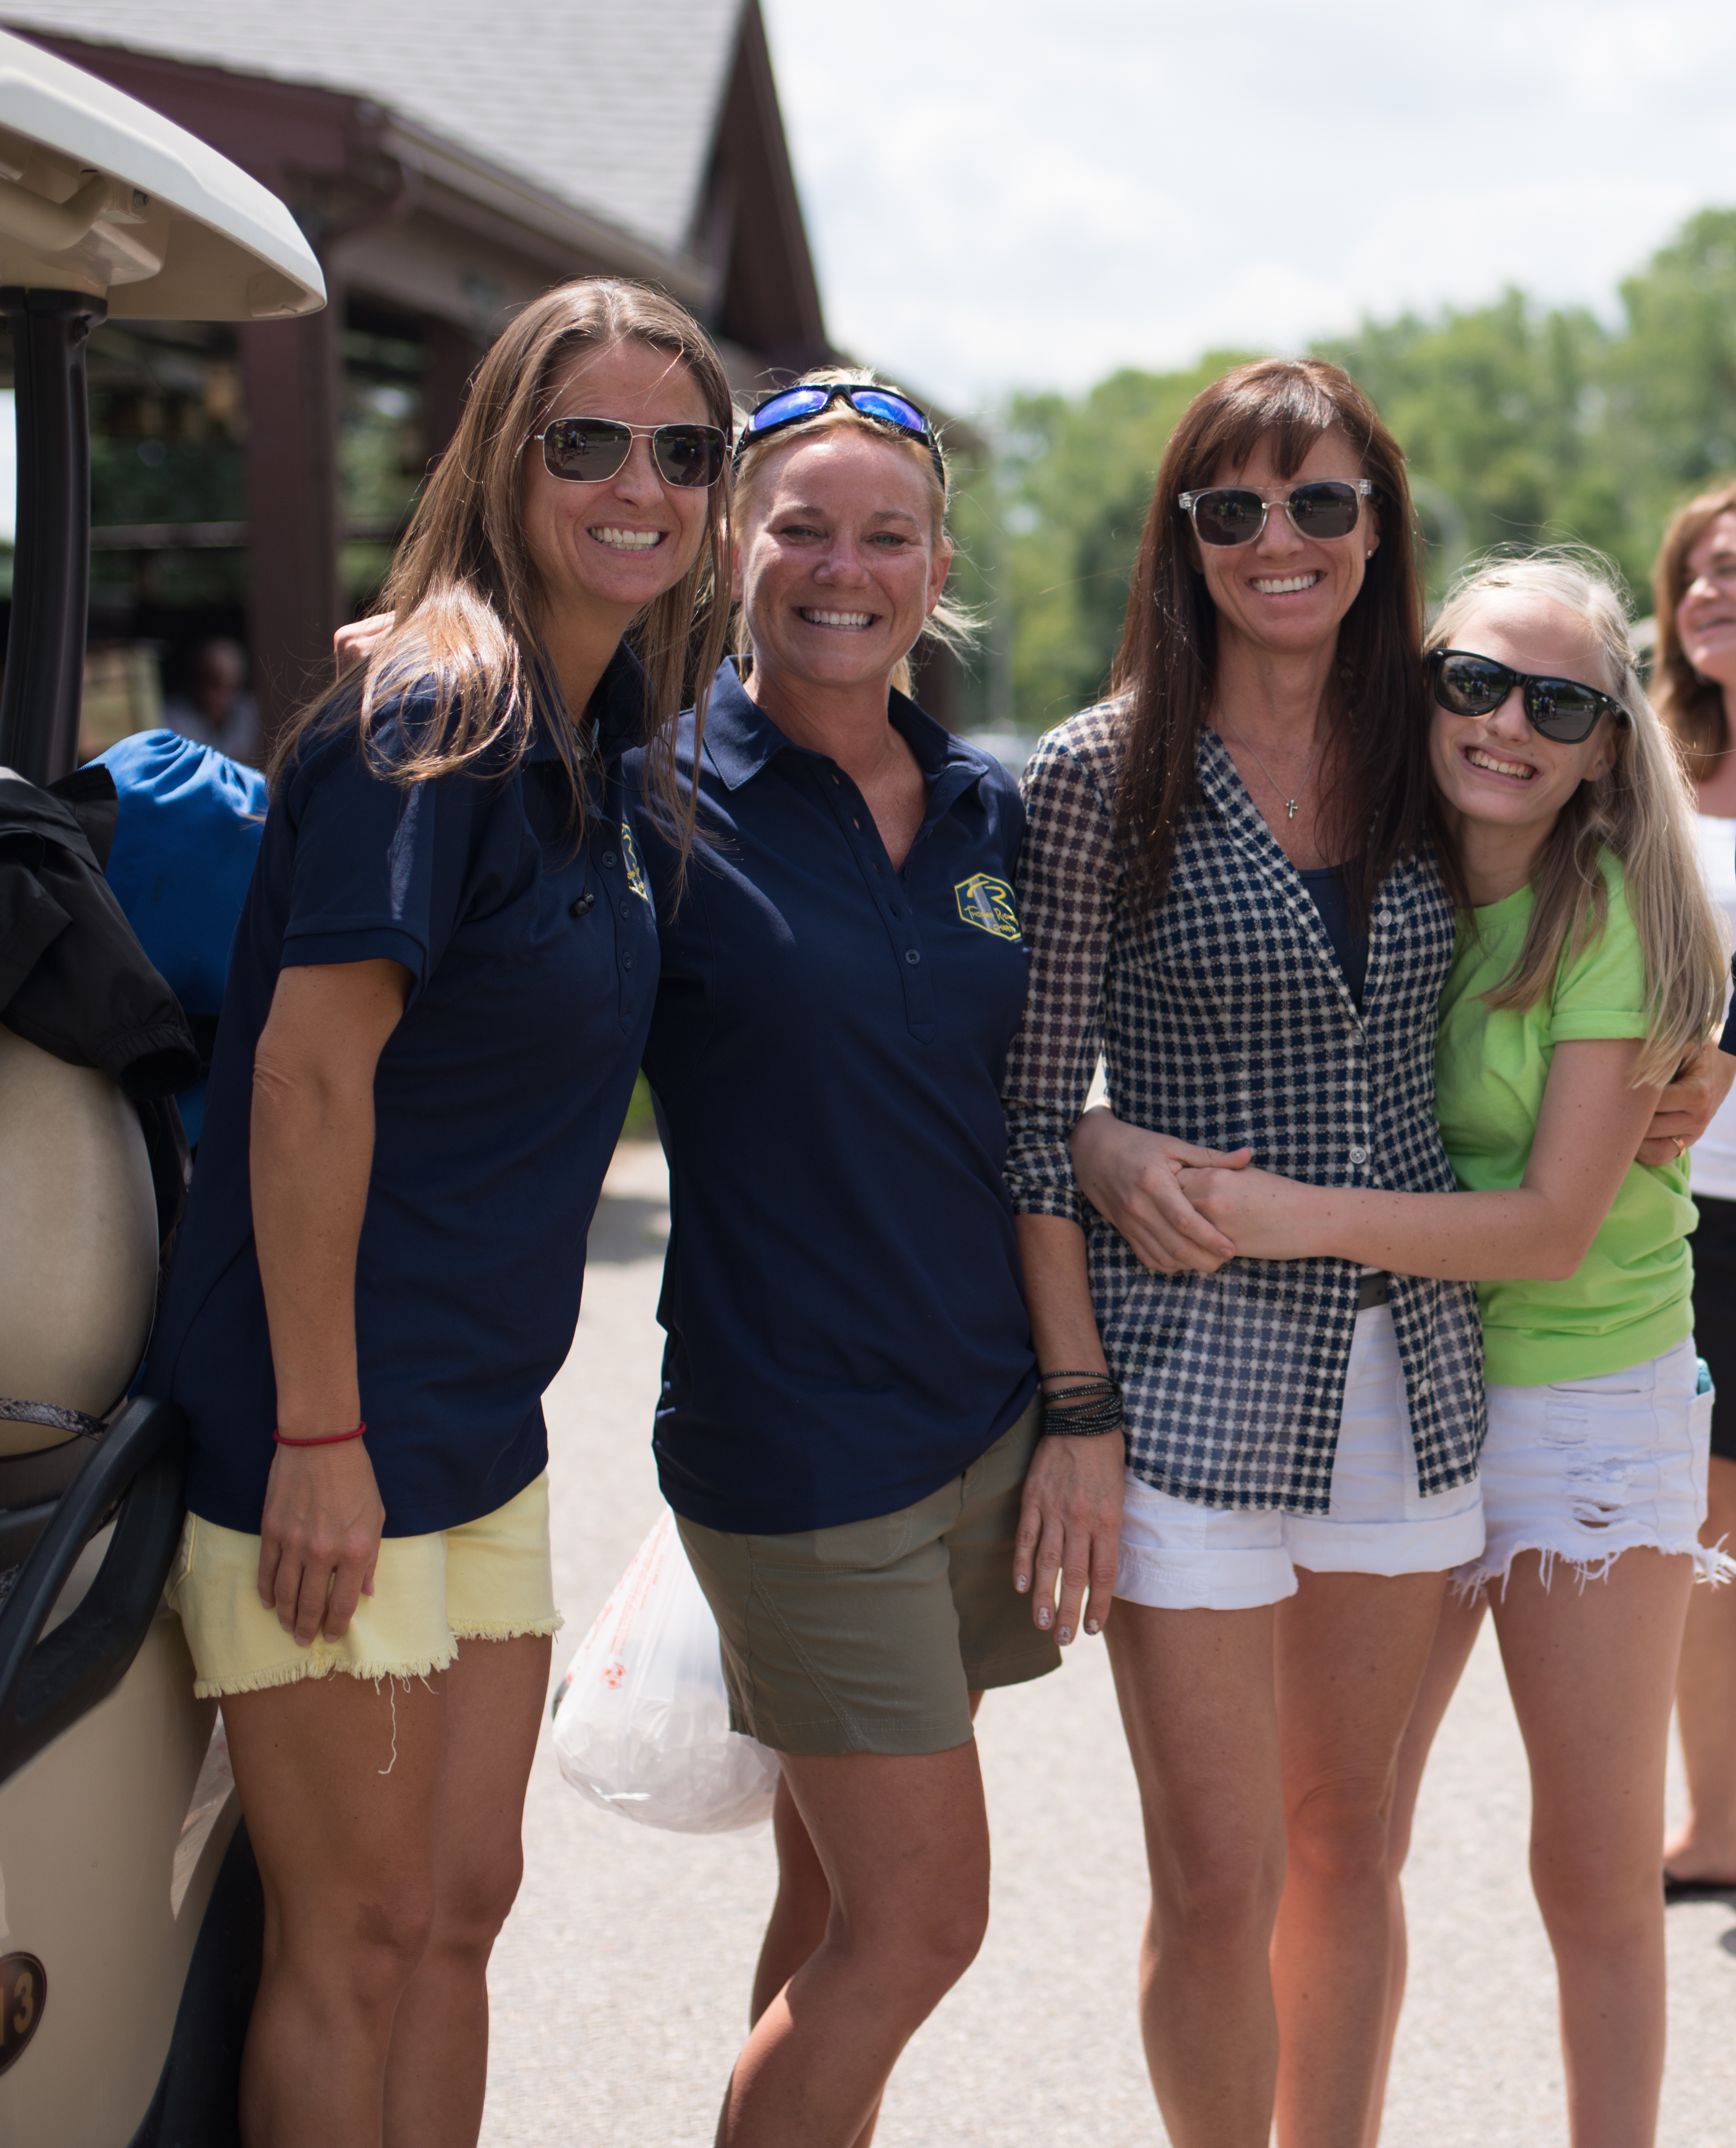 Nominations for the 2015 Matt Moscato Charity Golf